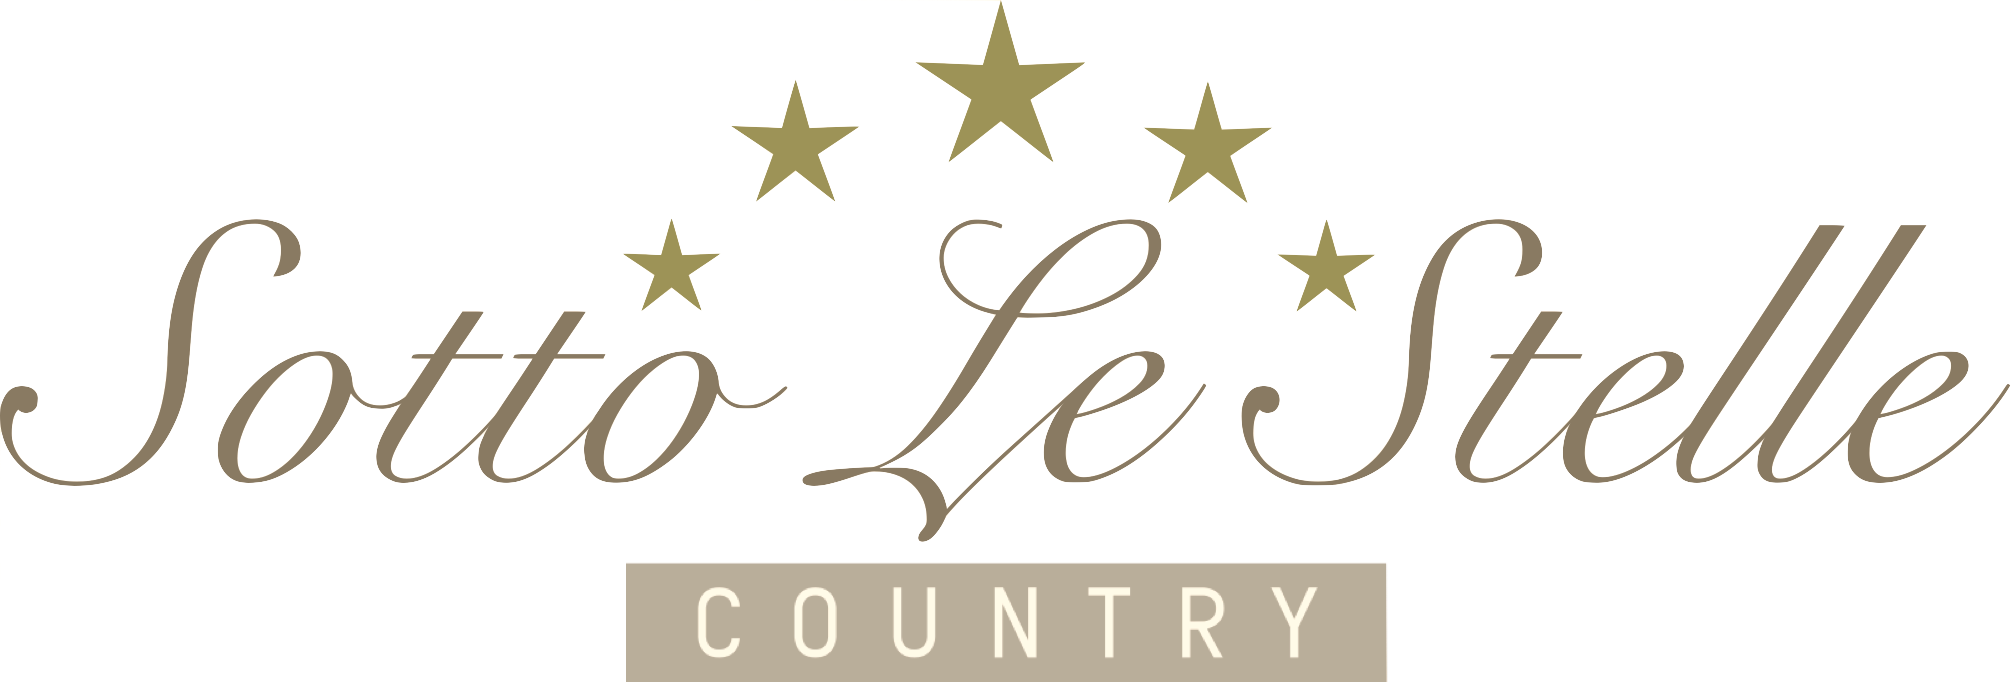 Sotto Le Stelle Country